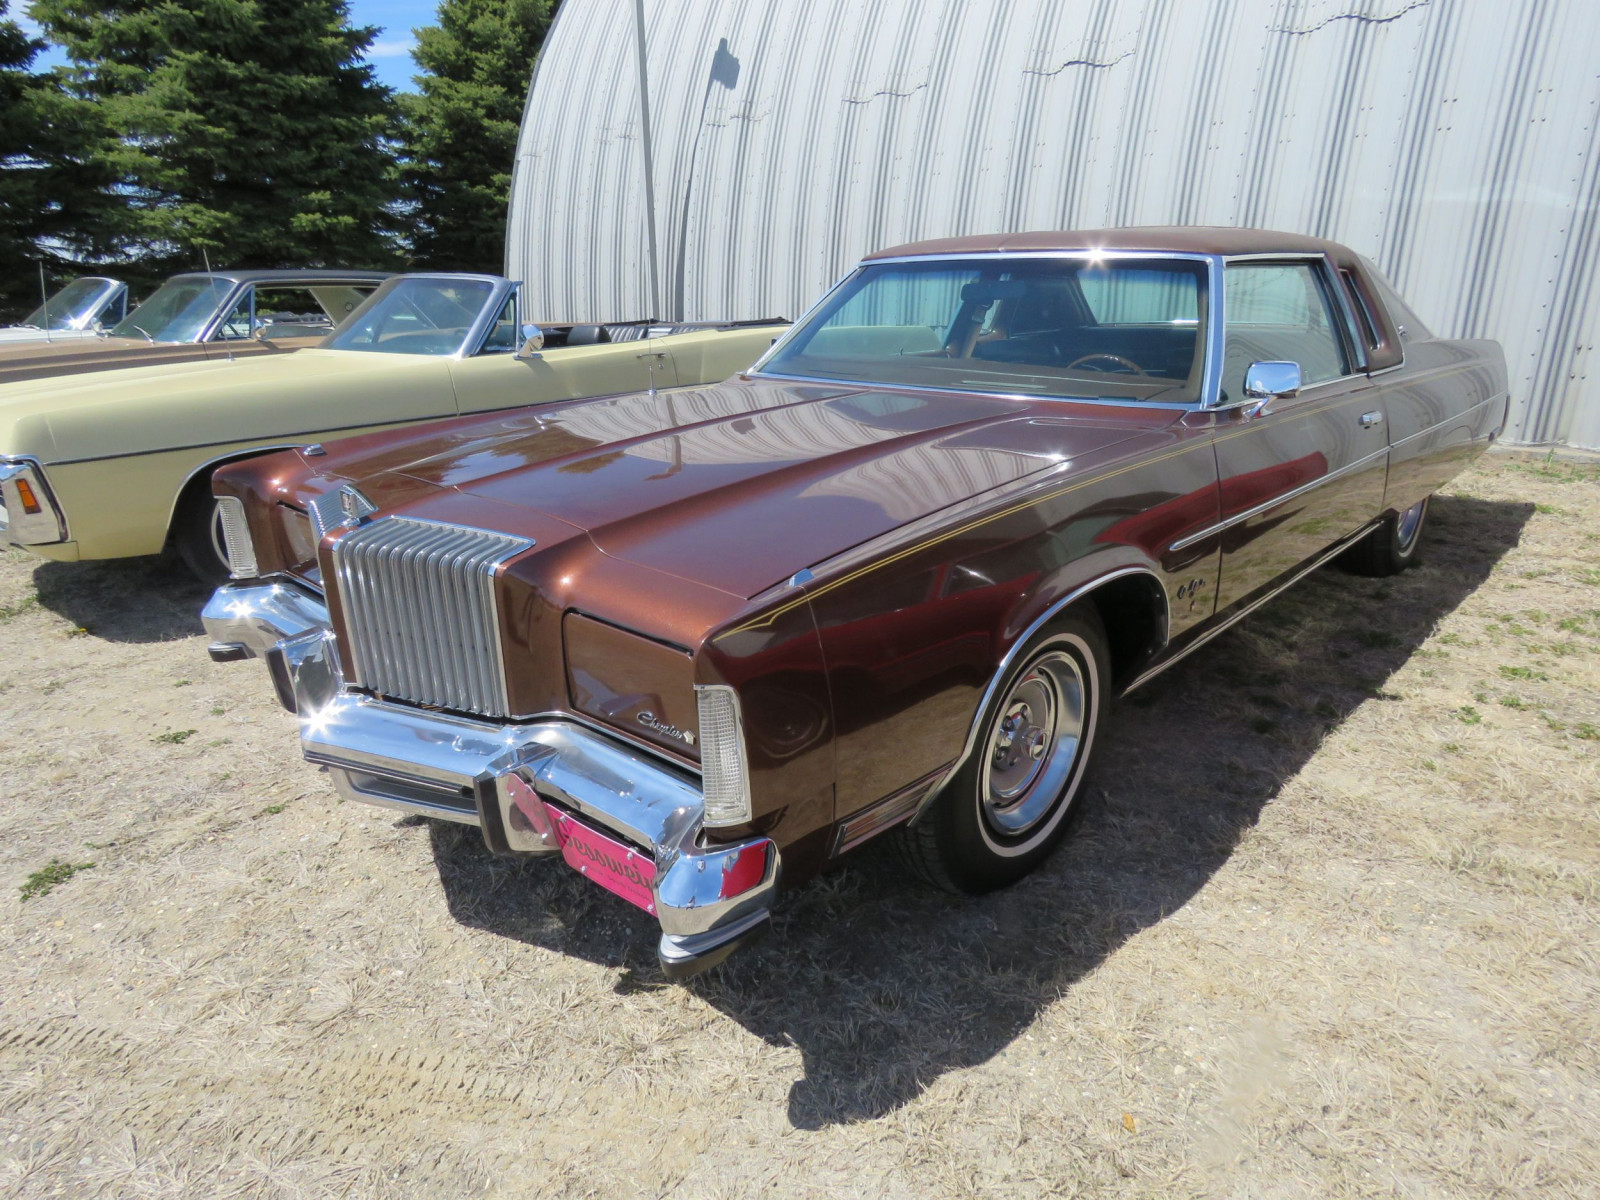 1977 Chrysler New Yorker Brougham with ST. Regis package - Image 1